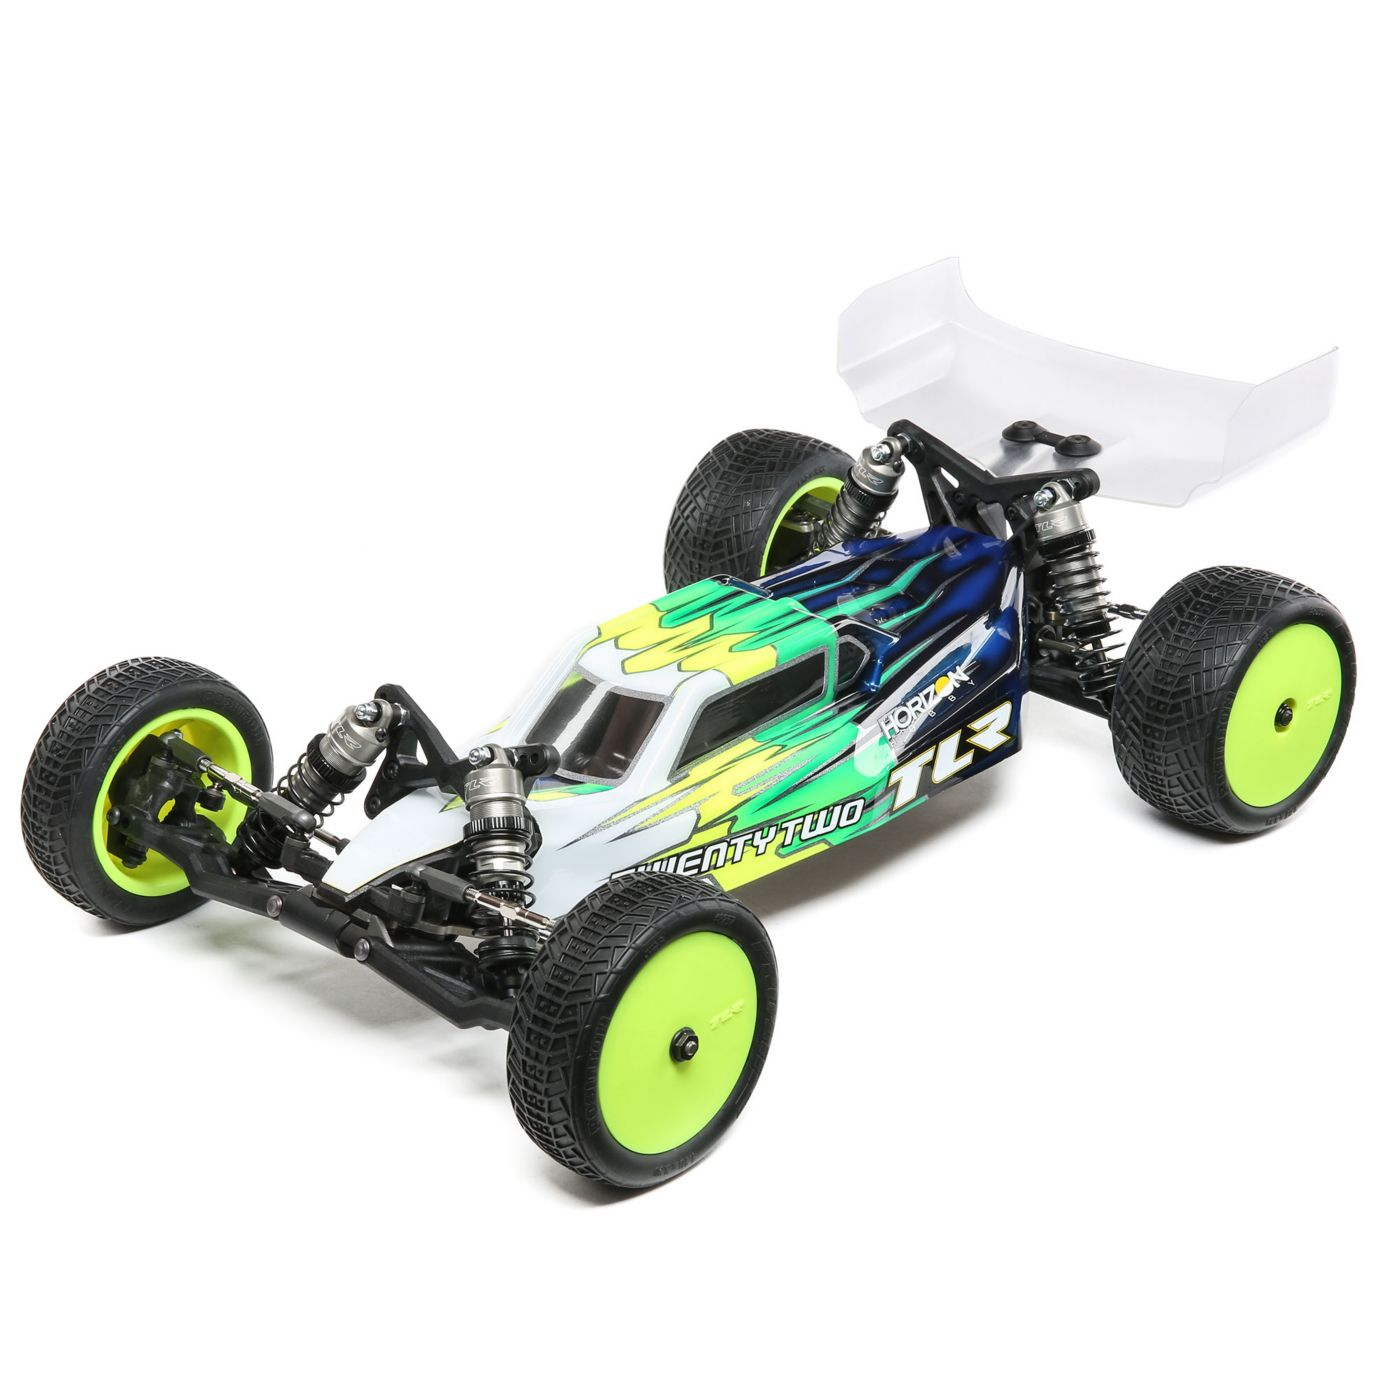 Team Losi Racing 22 4 0 Spec Racer Kit